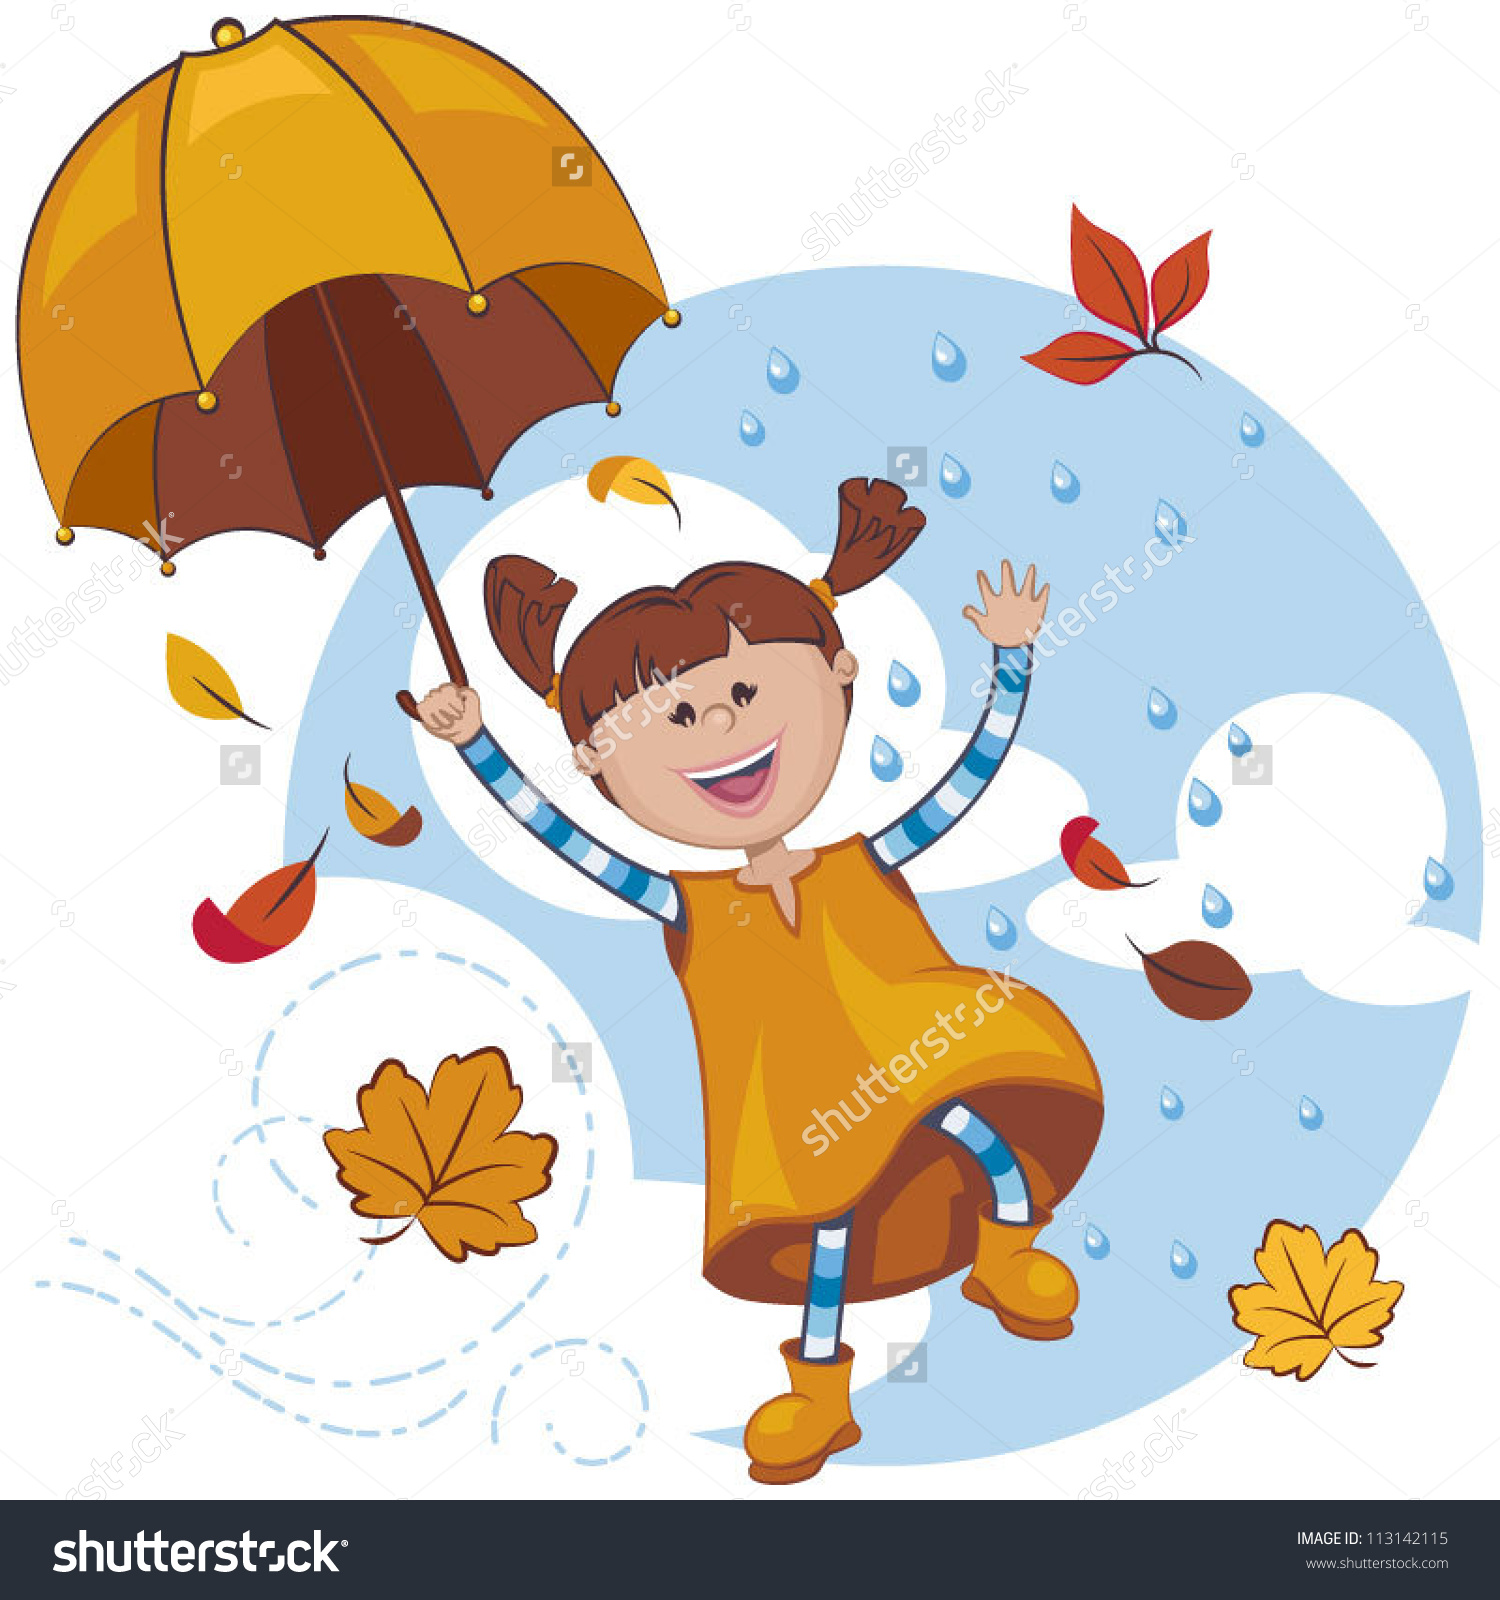 Baby girl autumn clipart graphic black and white Illustration Child Girl Umbrella Playing Fall Stock Vector ... graphic black and white